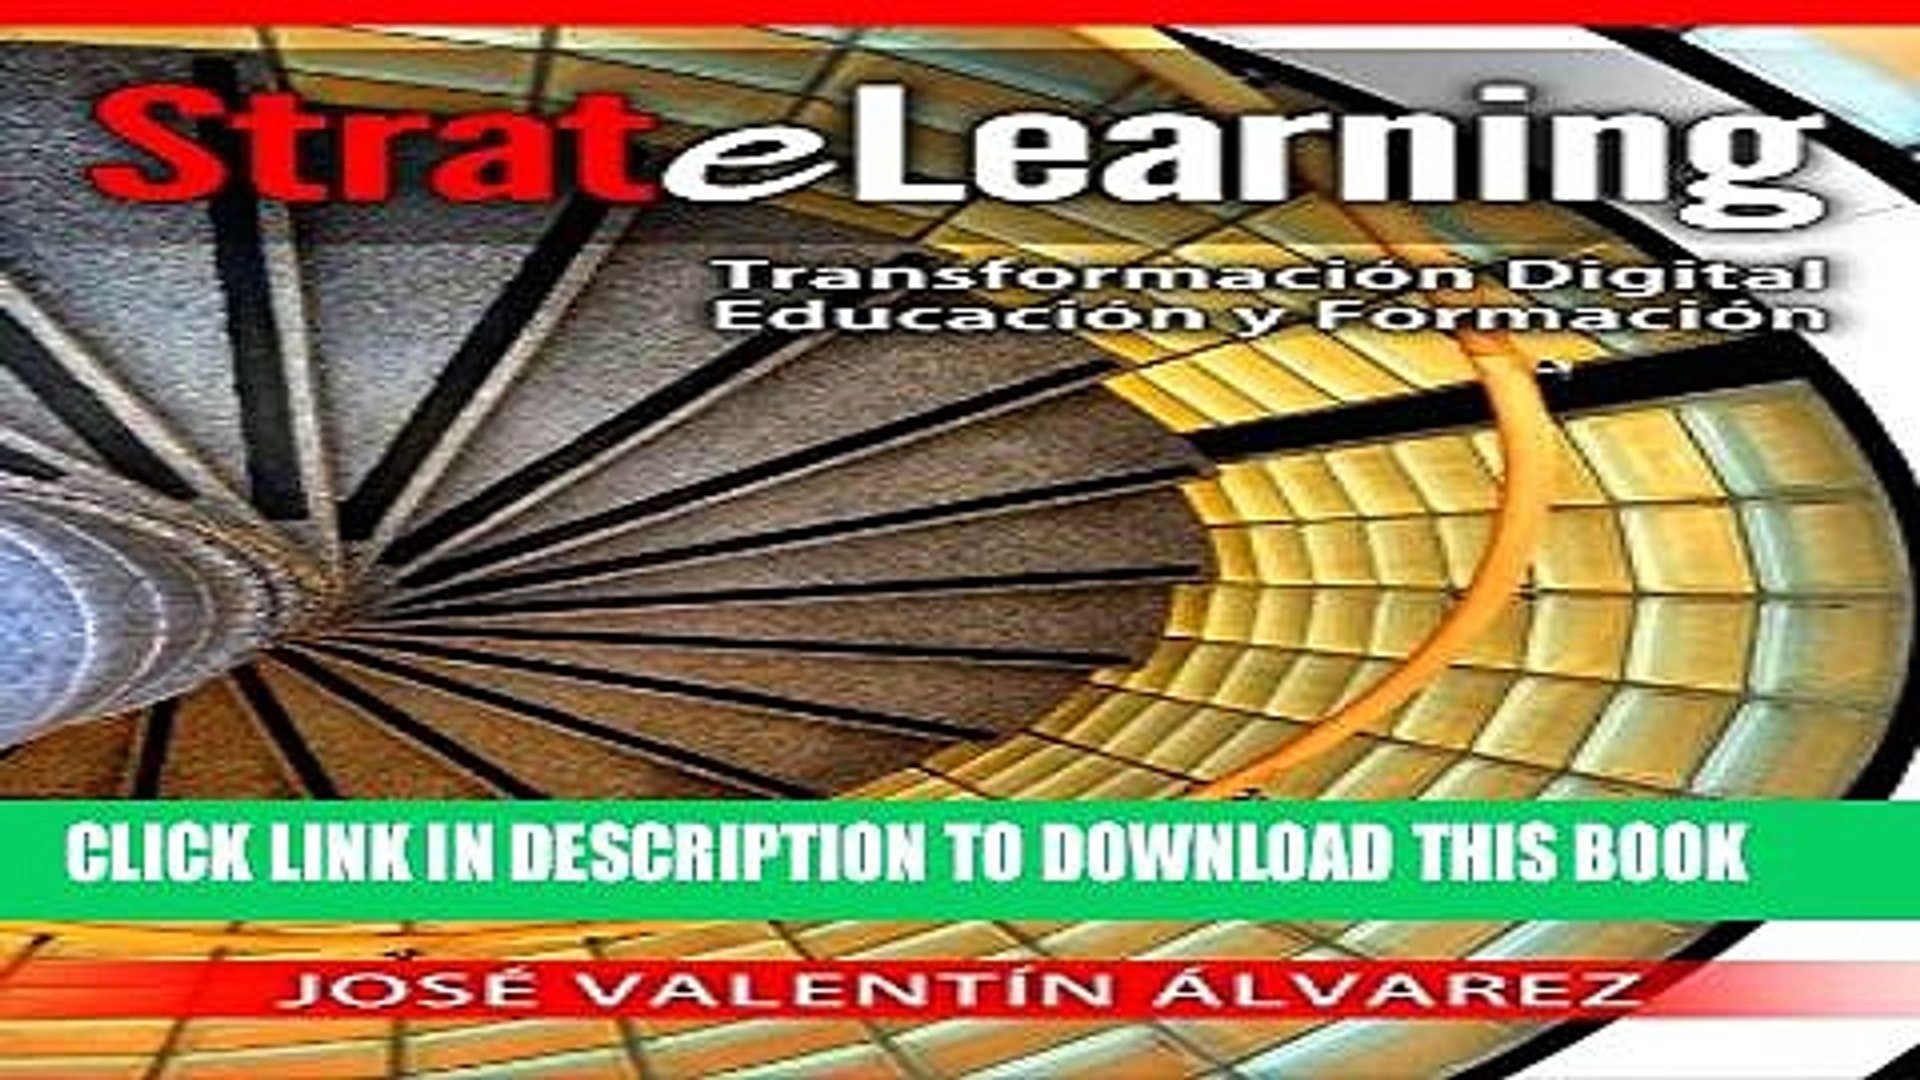 [PDF] StrateLearning: Transformación Digital de la Educación y Formación (Spanish Edition) Full